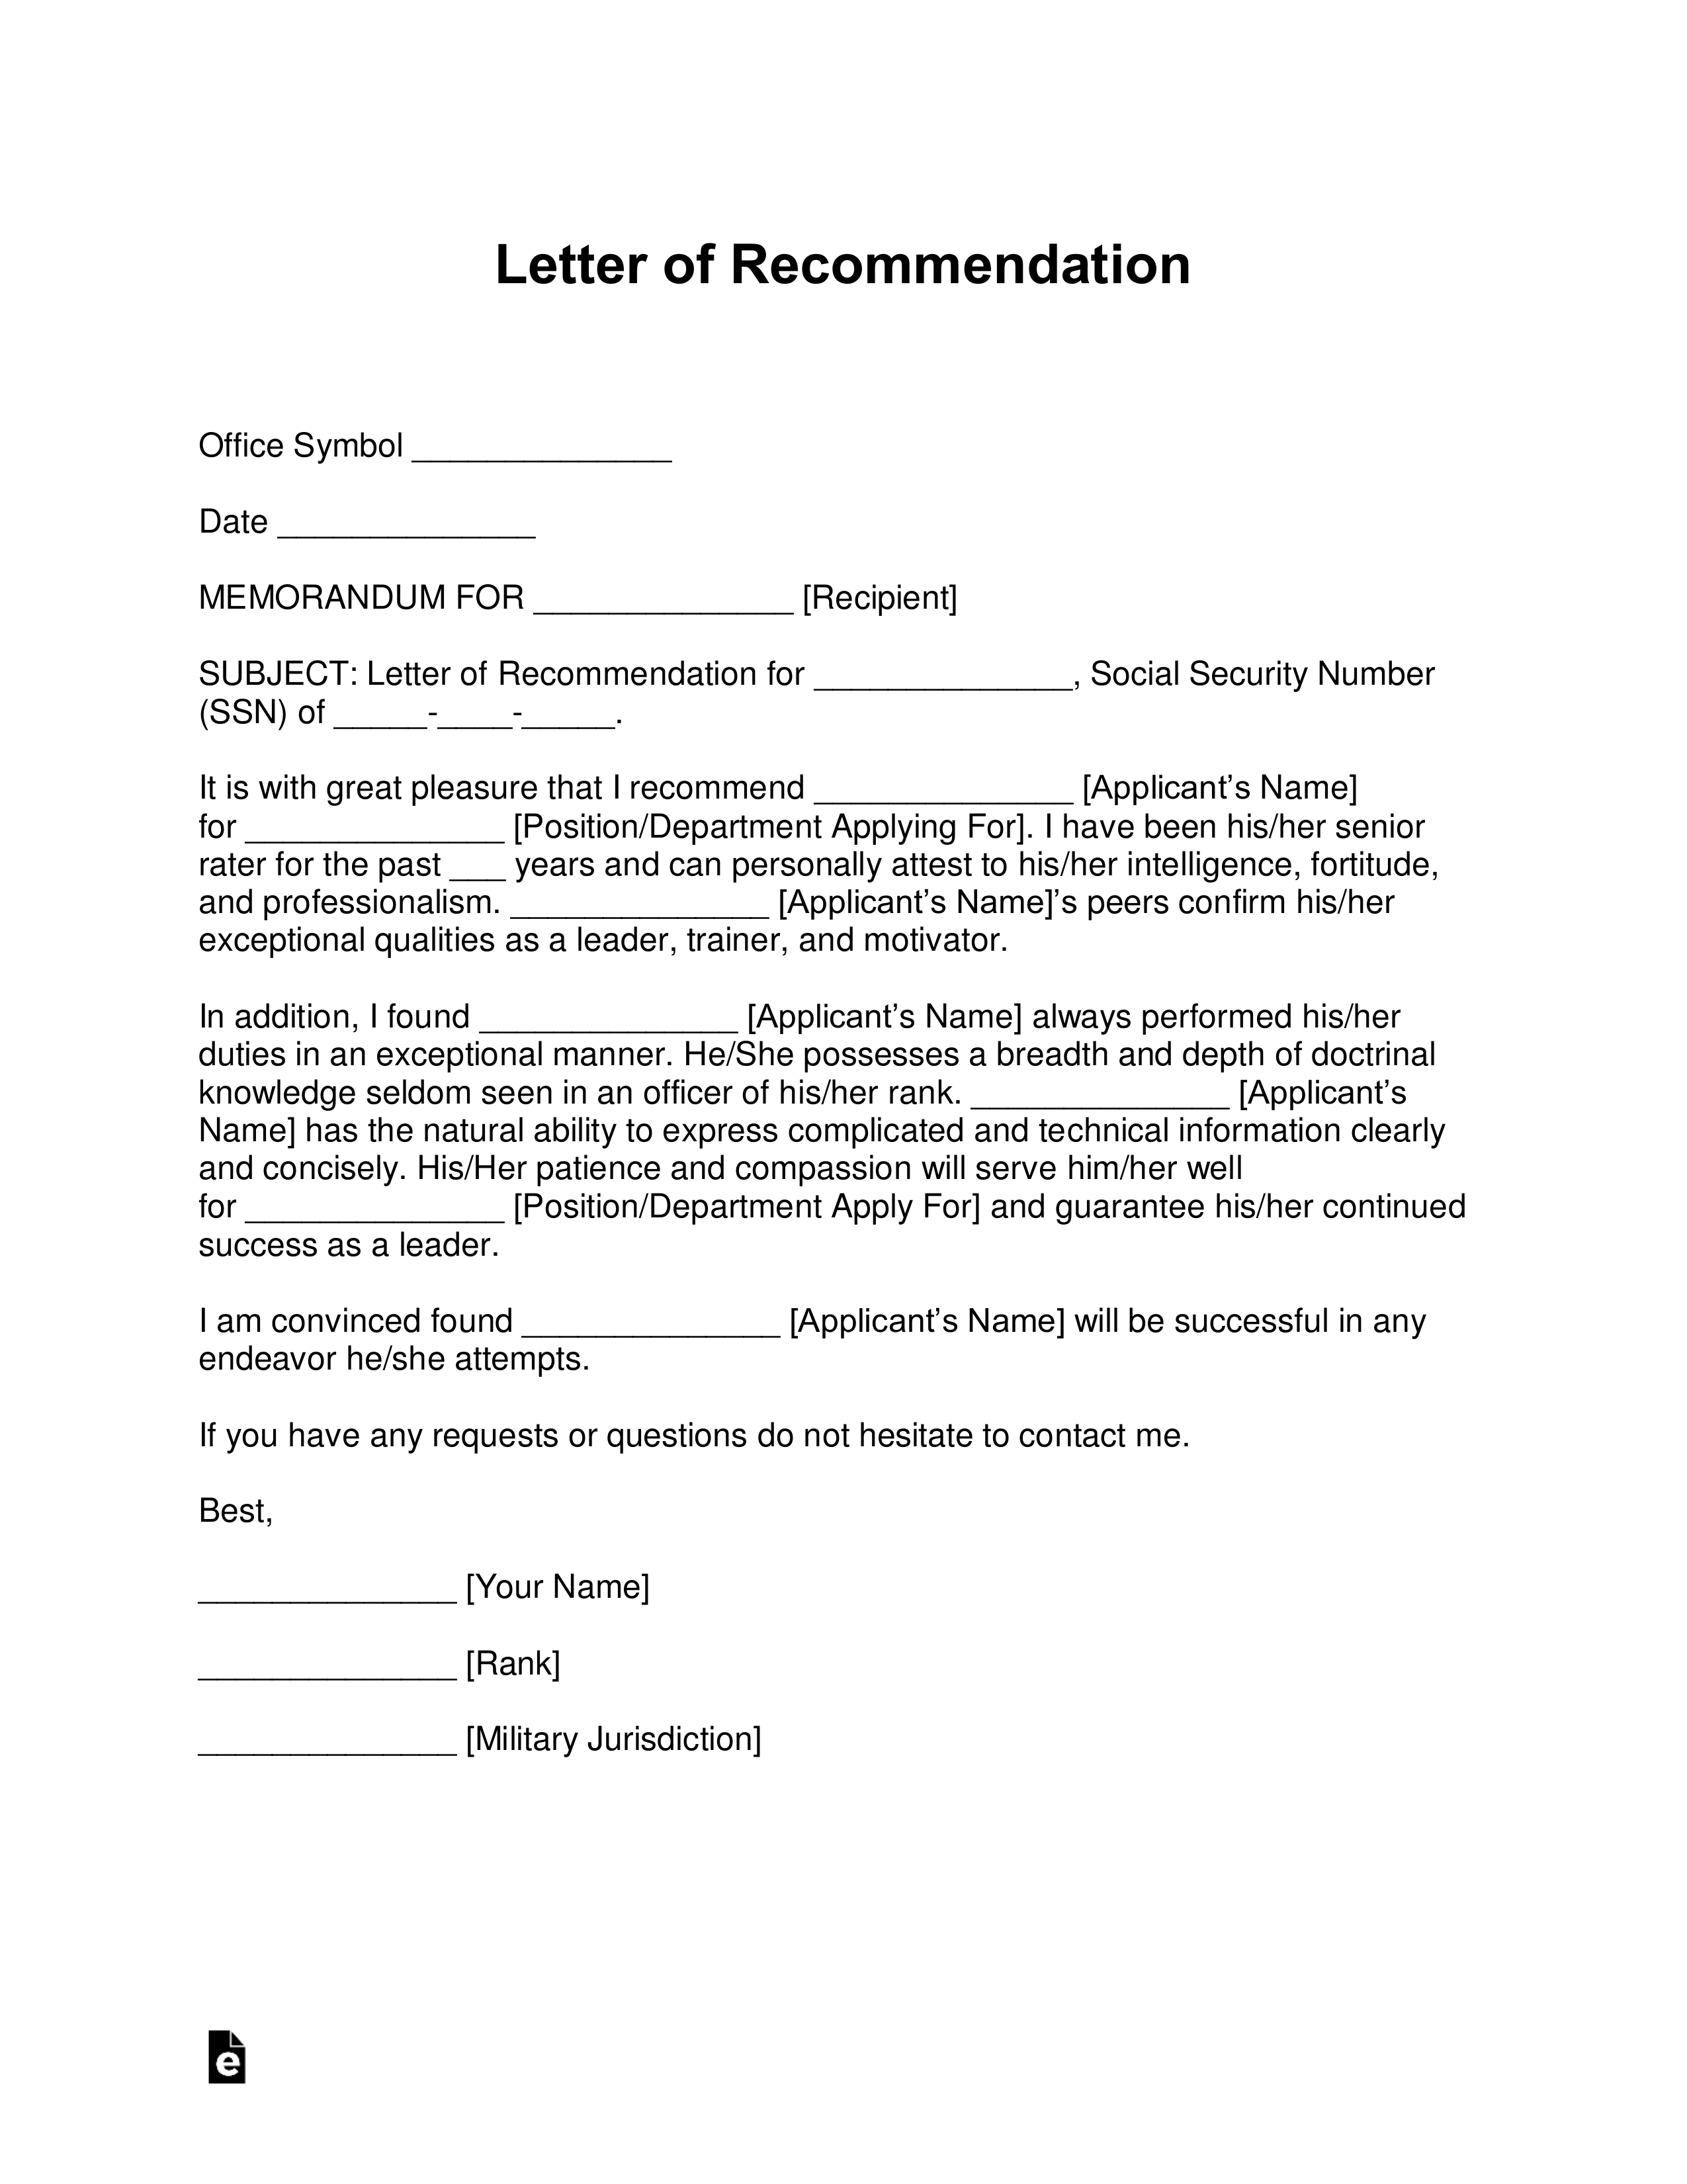 Promotion Letter Of Recommendation from eforms.com